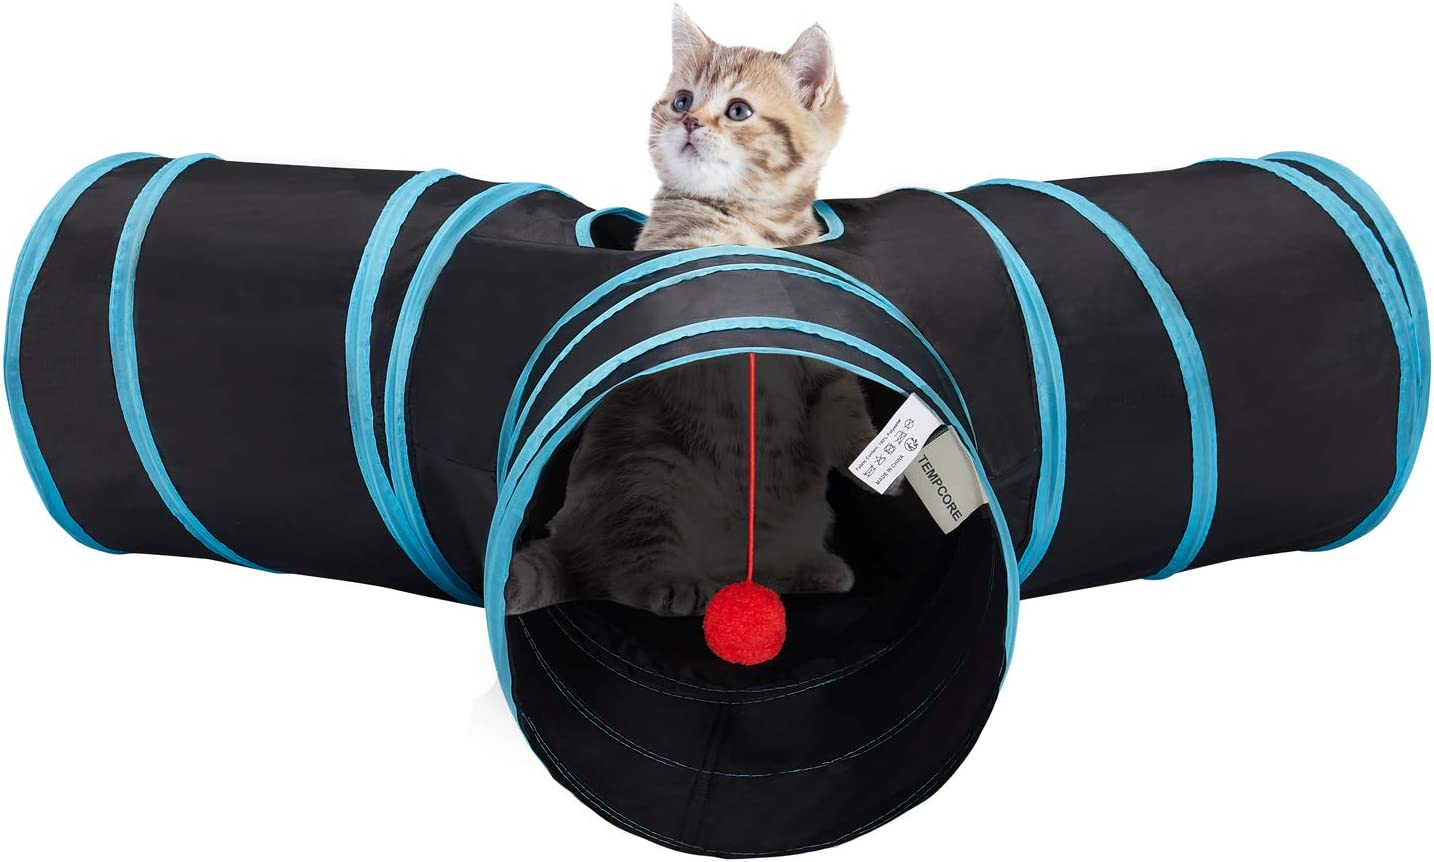 GOHOO PET Cat Tunnel Pop-up Crinkle Paper Pet Tube Collapsible Pet Tunnel Interactive Play Toy with Peekaboo Holes